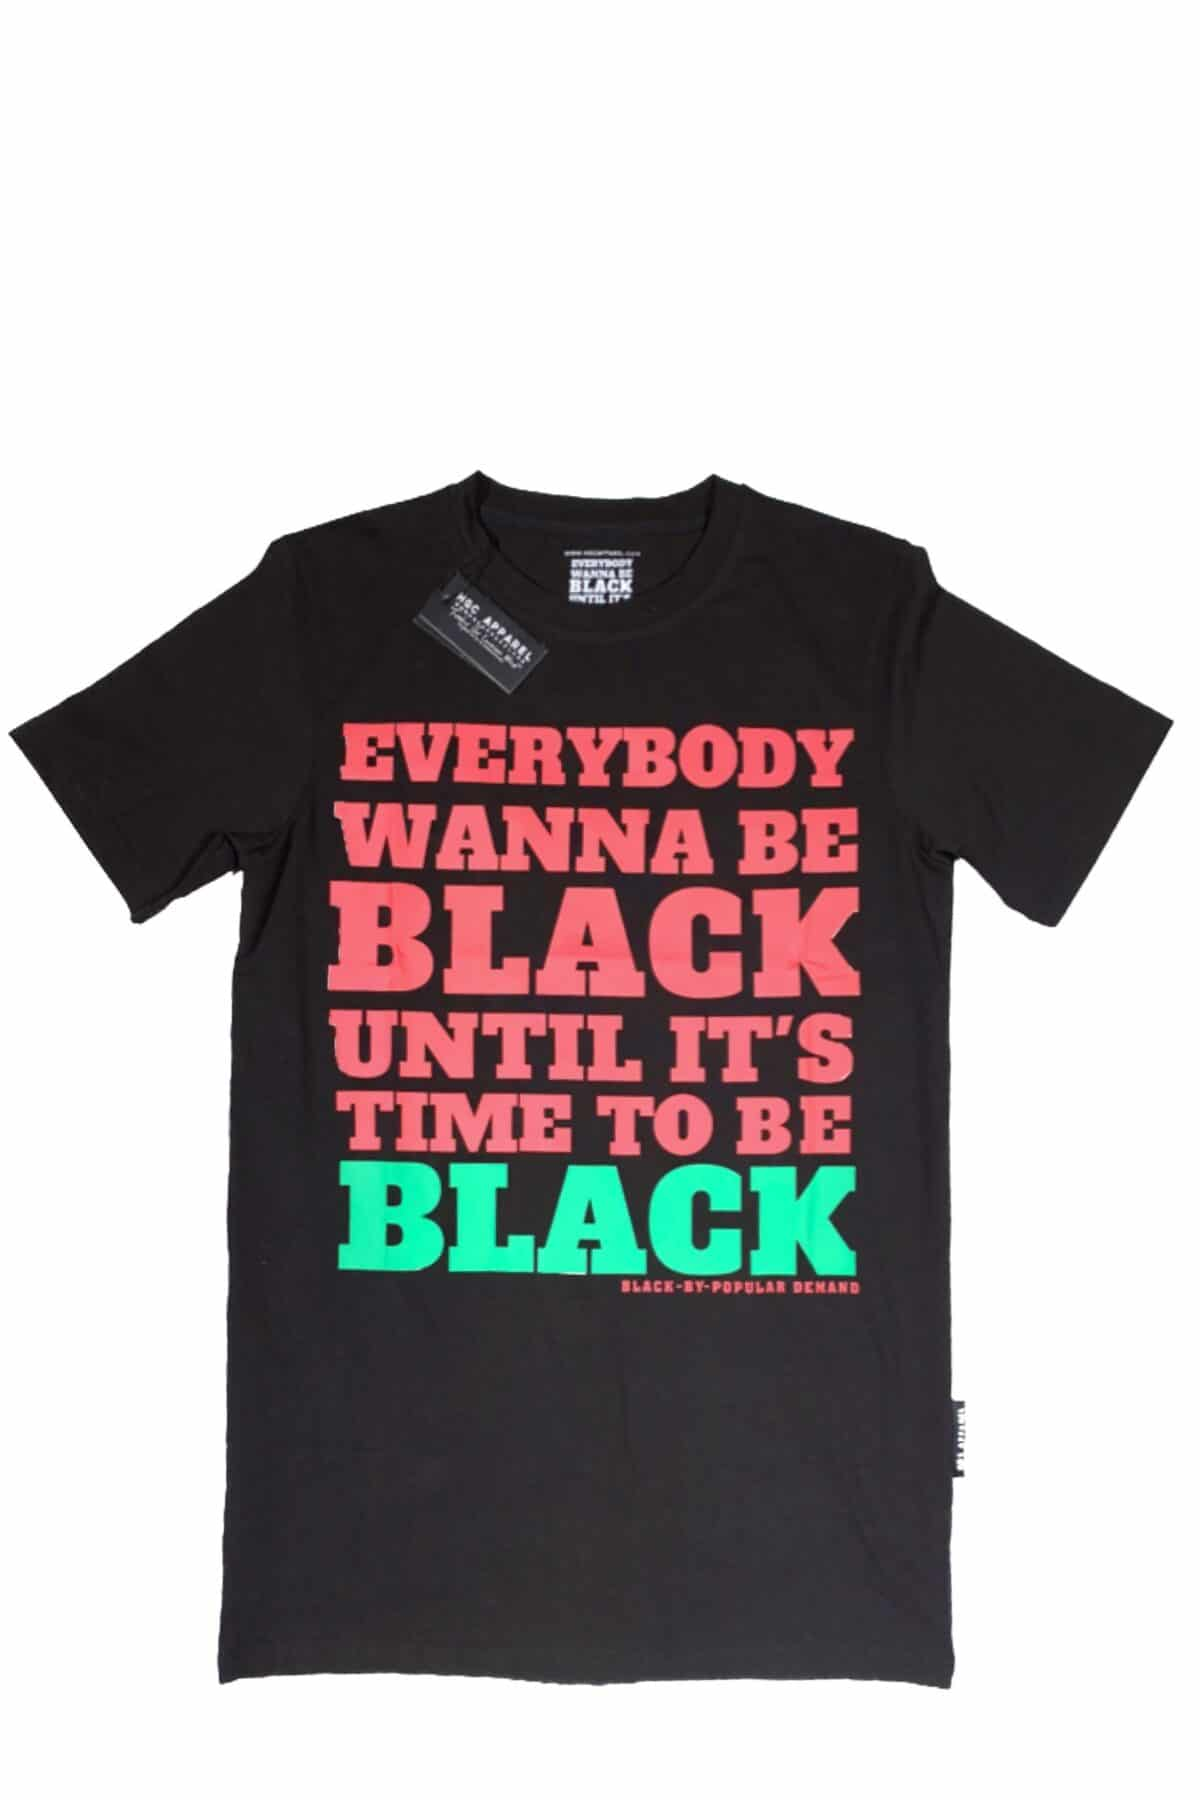 EVERYBODY WANNA BE BLACK UNTIL IT'S TIME TO BE BLACK® Unisex Black Shirt HGC Apparel